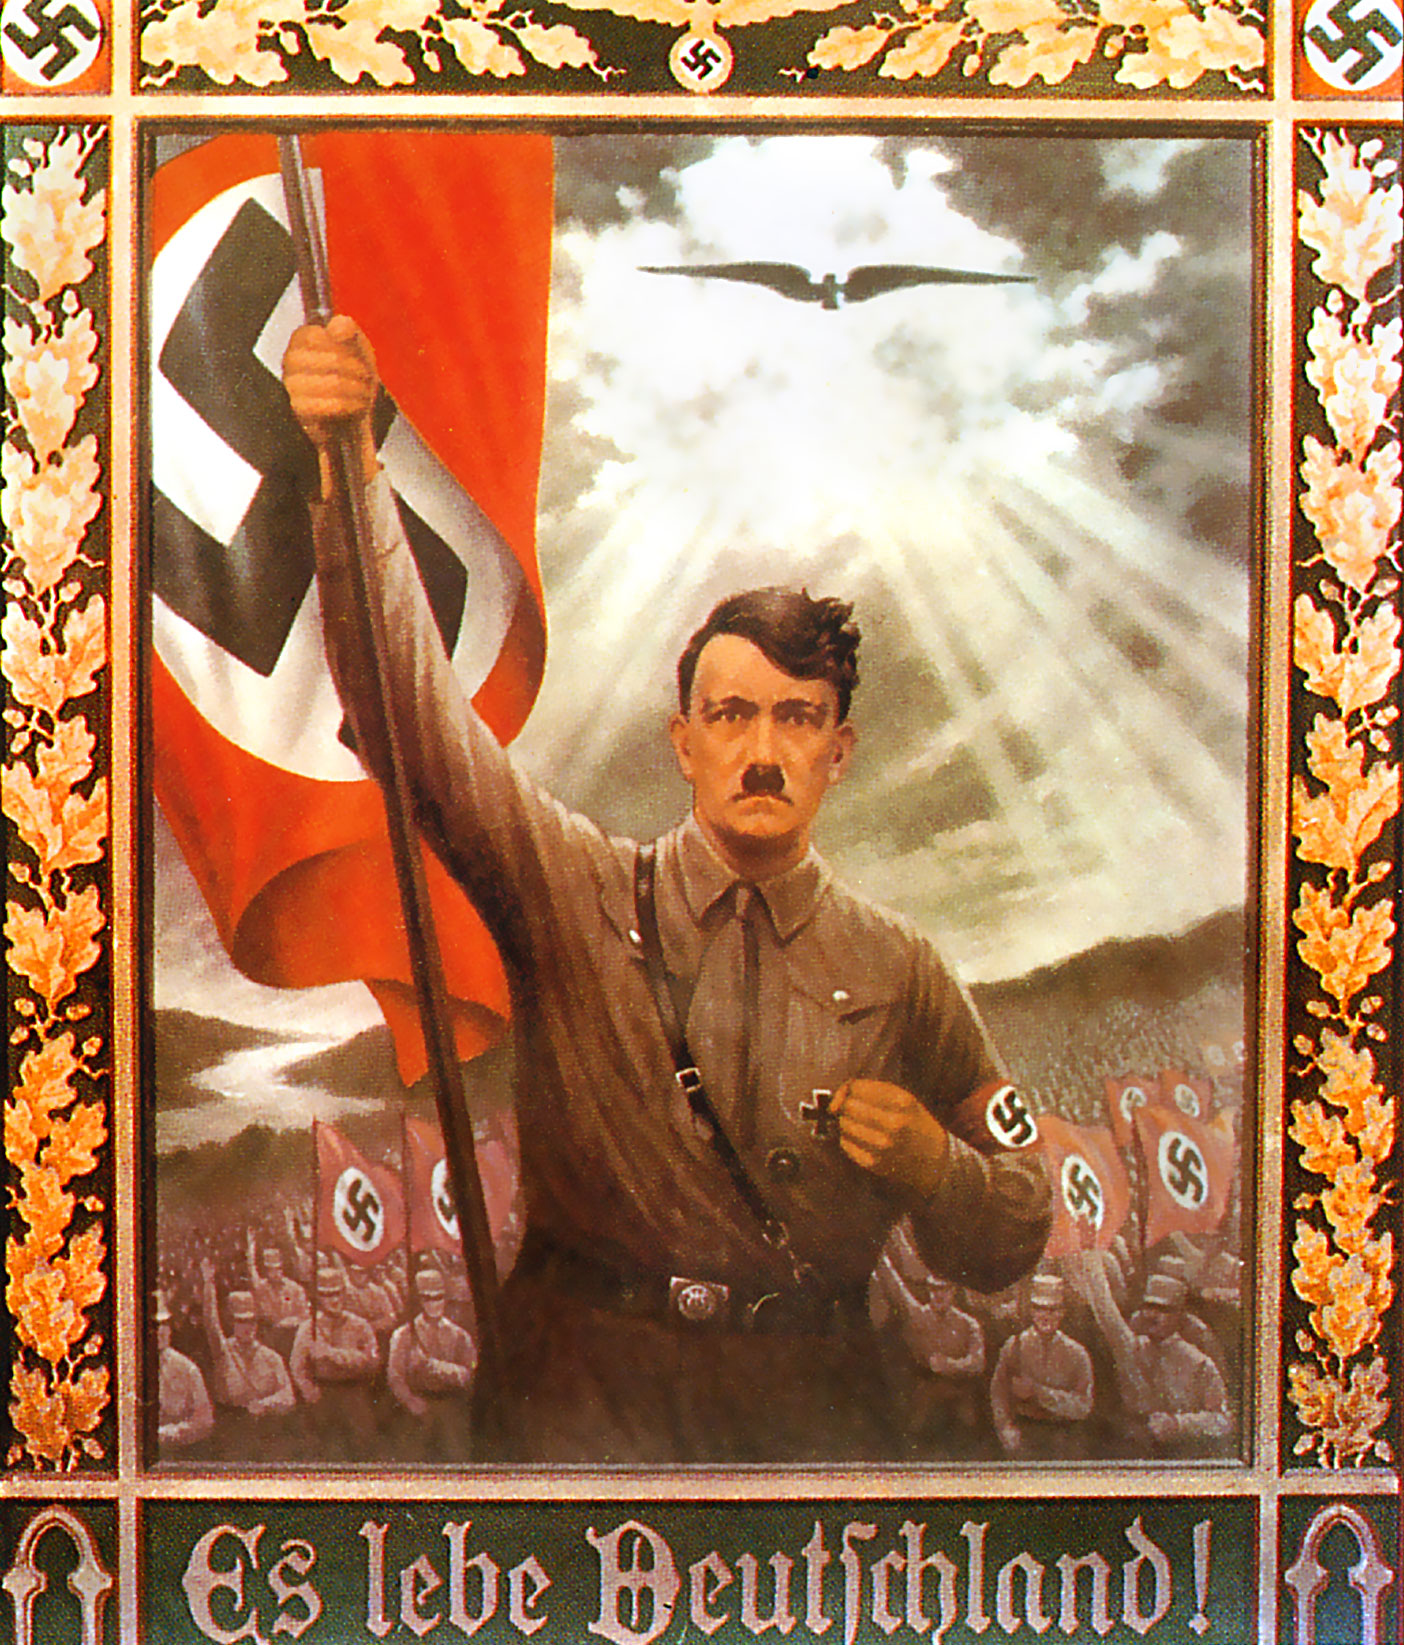 adolf hitler and the soviet propaganda Adolf hitler was in charge of germany for 12 years (1933-1945) hitler started the war and made all resolutions during world war 2 for germany adolf hitler started the war because he wanted germany to be enlarged so he fought for more land.